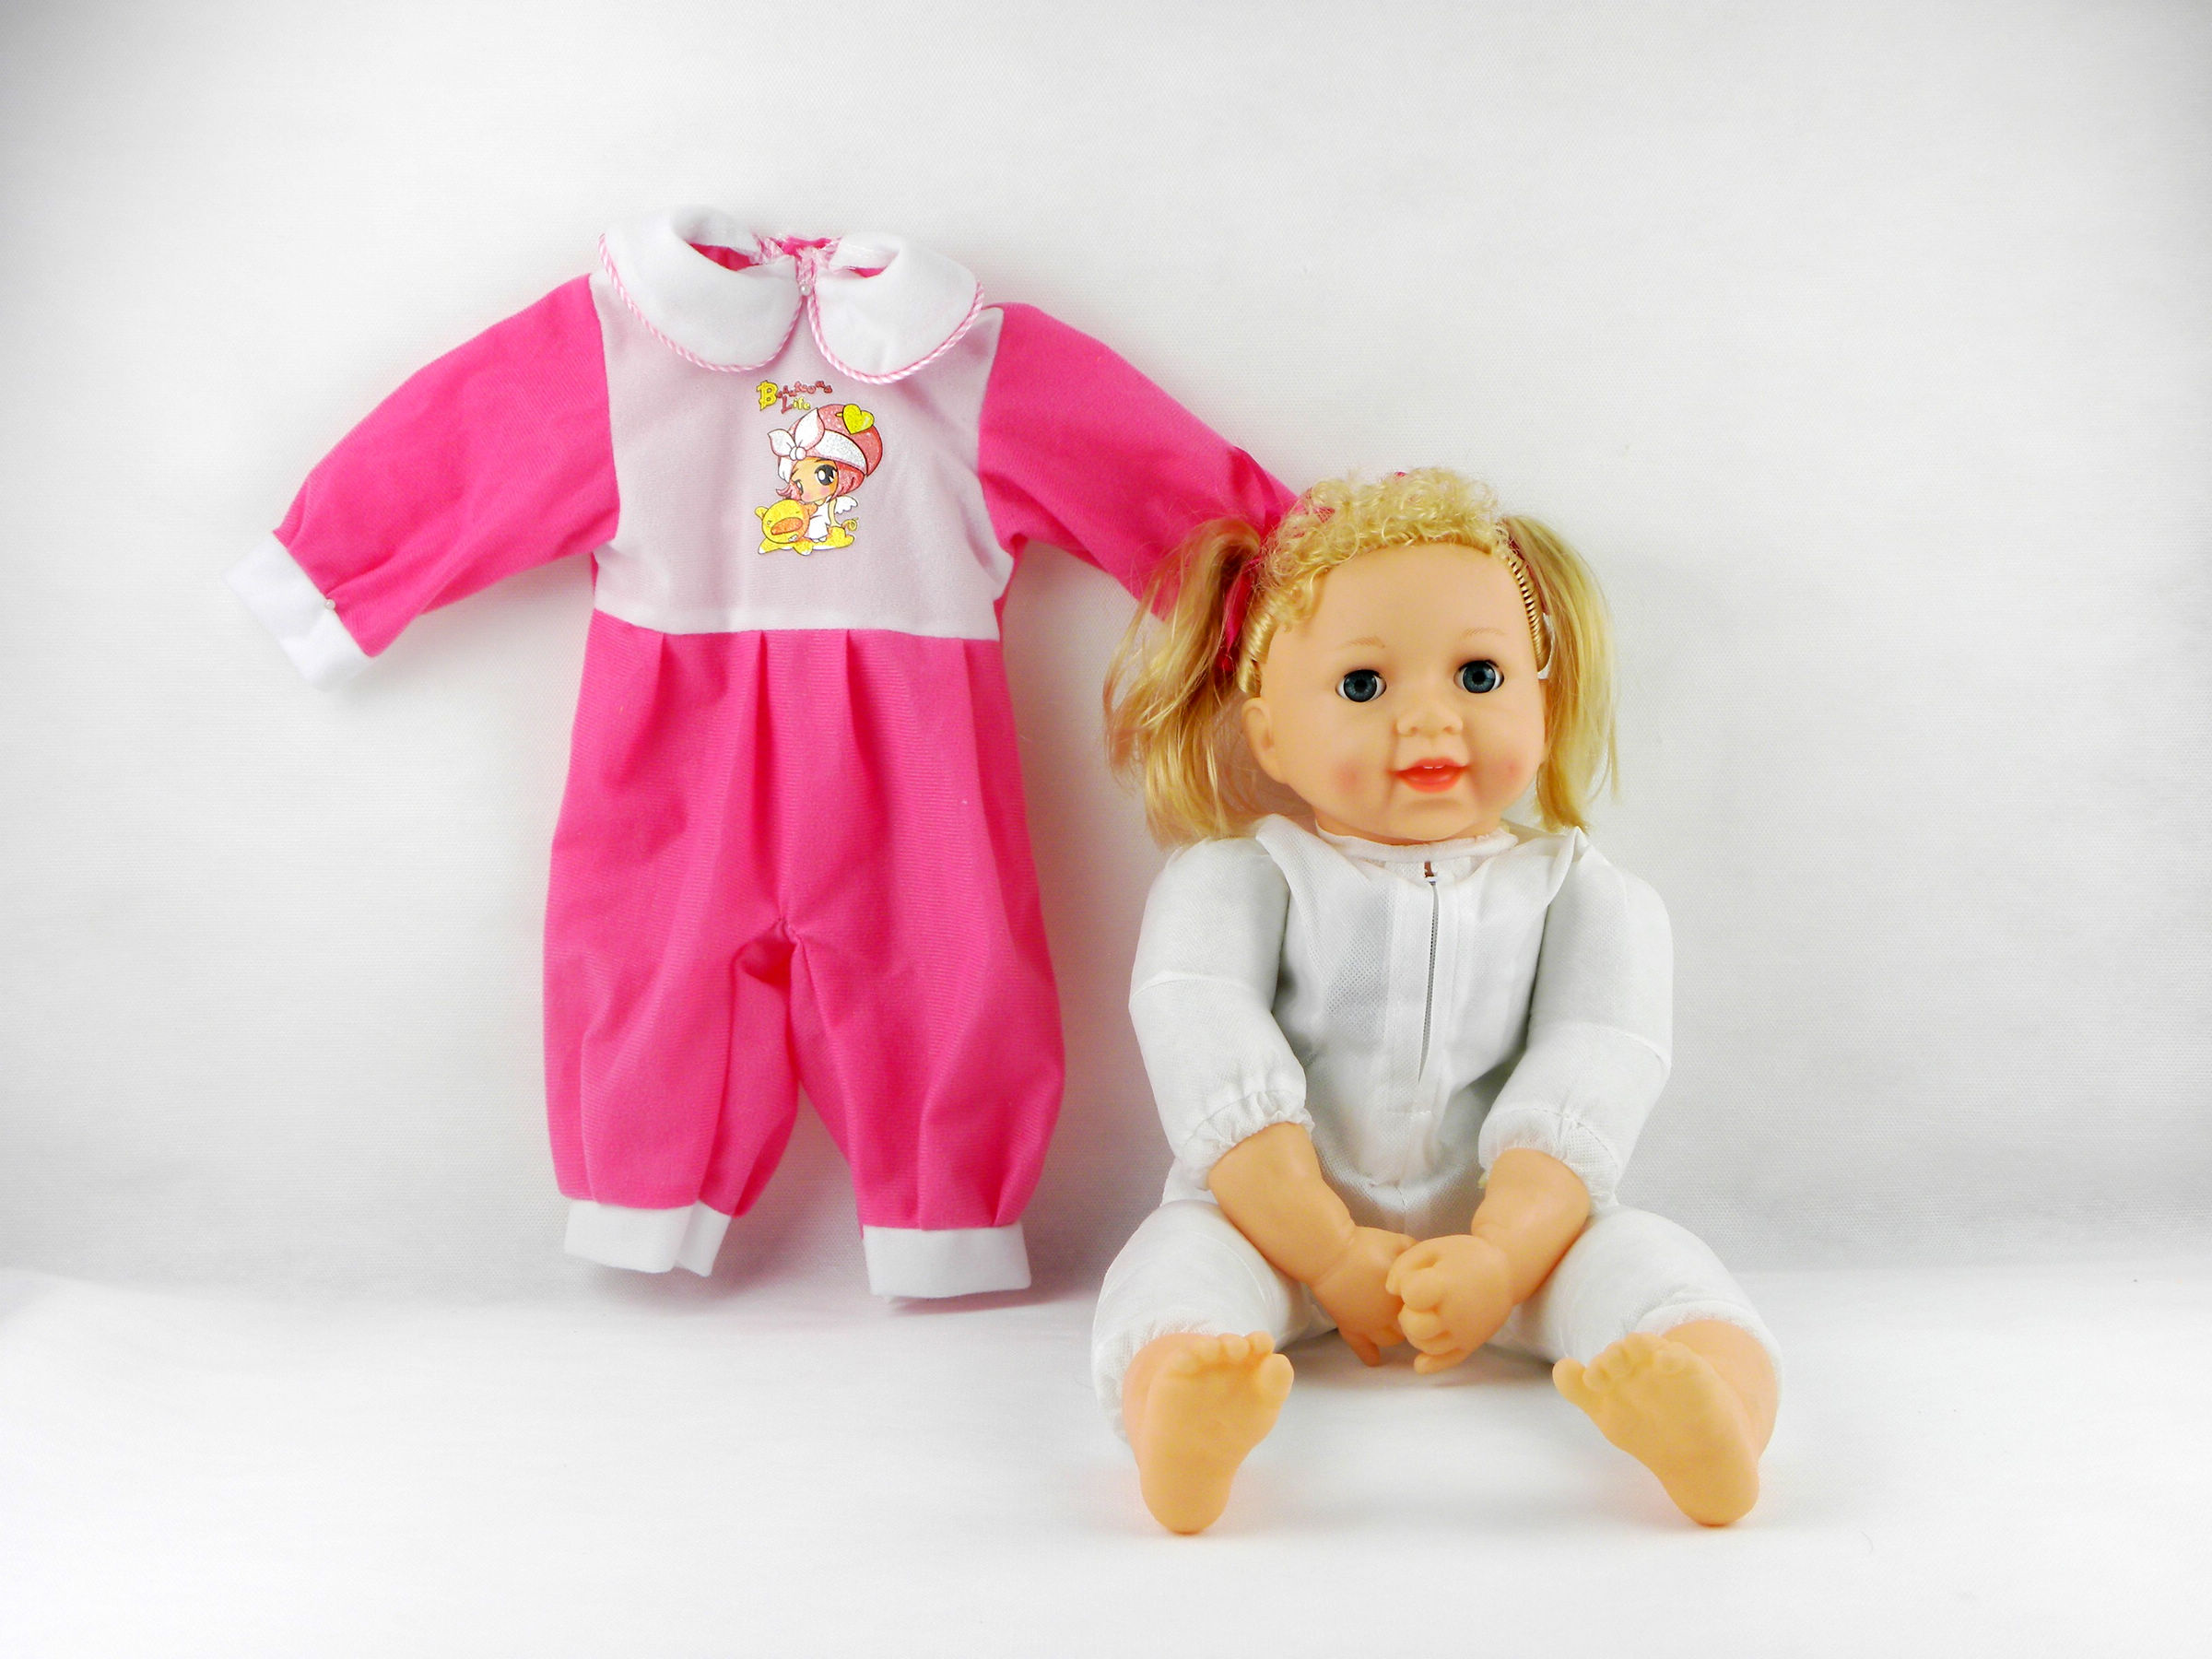 Reborn Baby Doll 53cm Collection Doll Lifelike Baby Reborns Girl